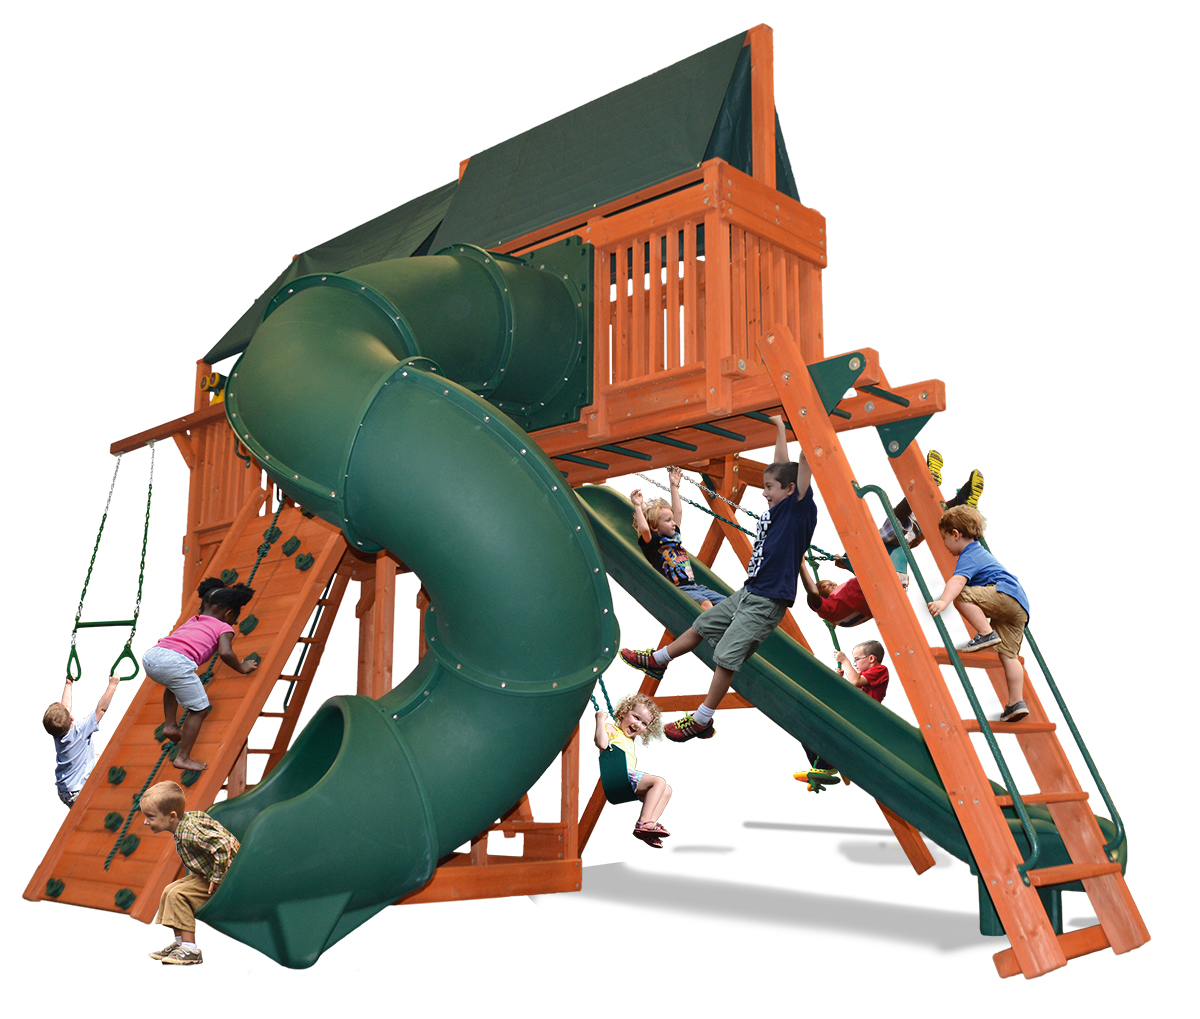 Extreme Fort Combo 5 play set with premier picnic table, monkey bars, skyloft and corkscrew slide